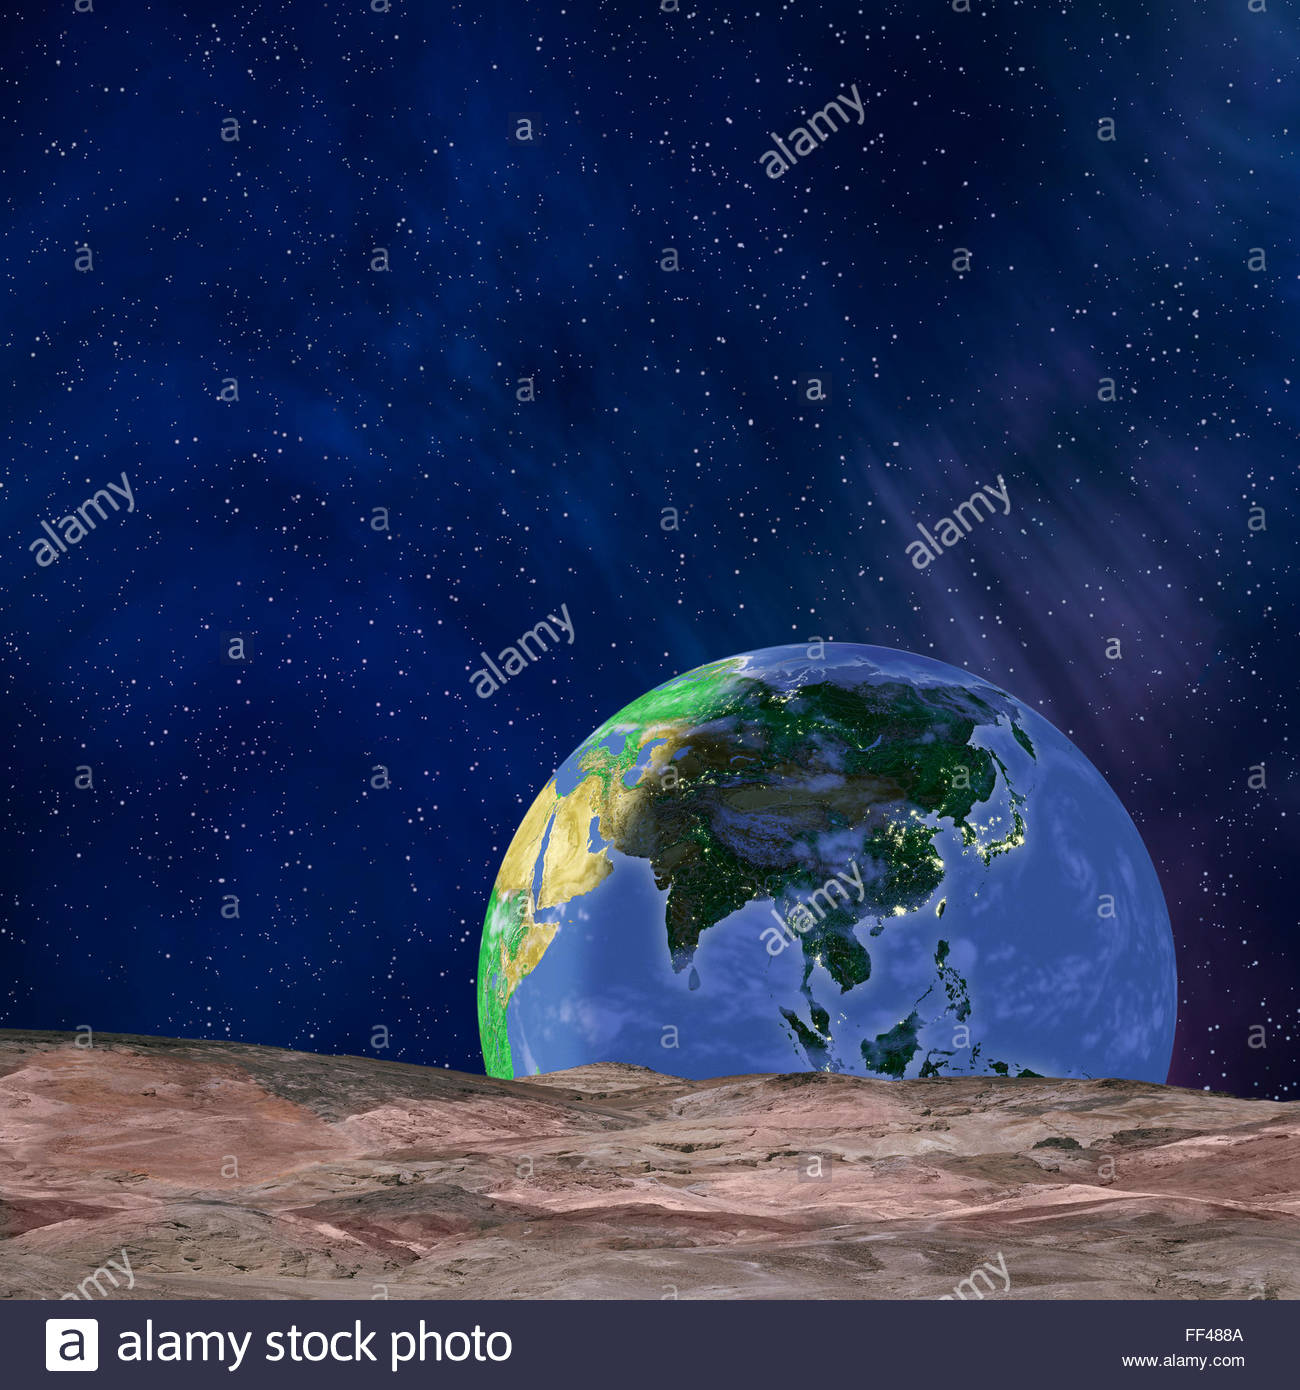 Simulation of earth rising from below the moon's horizon. Artist takes license with the science. earthrise moon - Stock Image